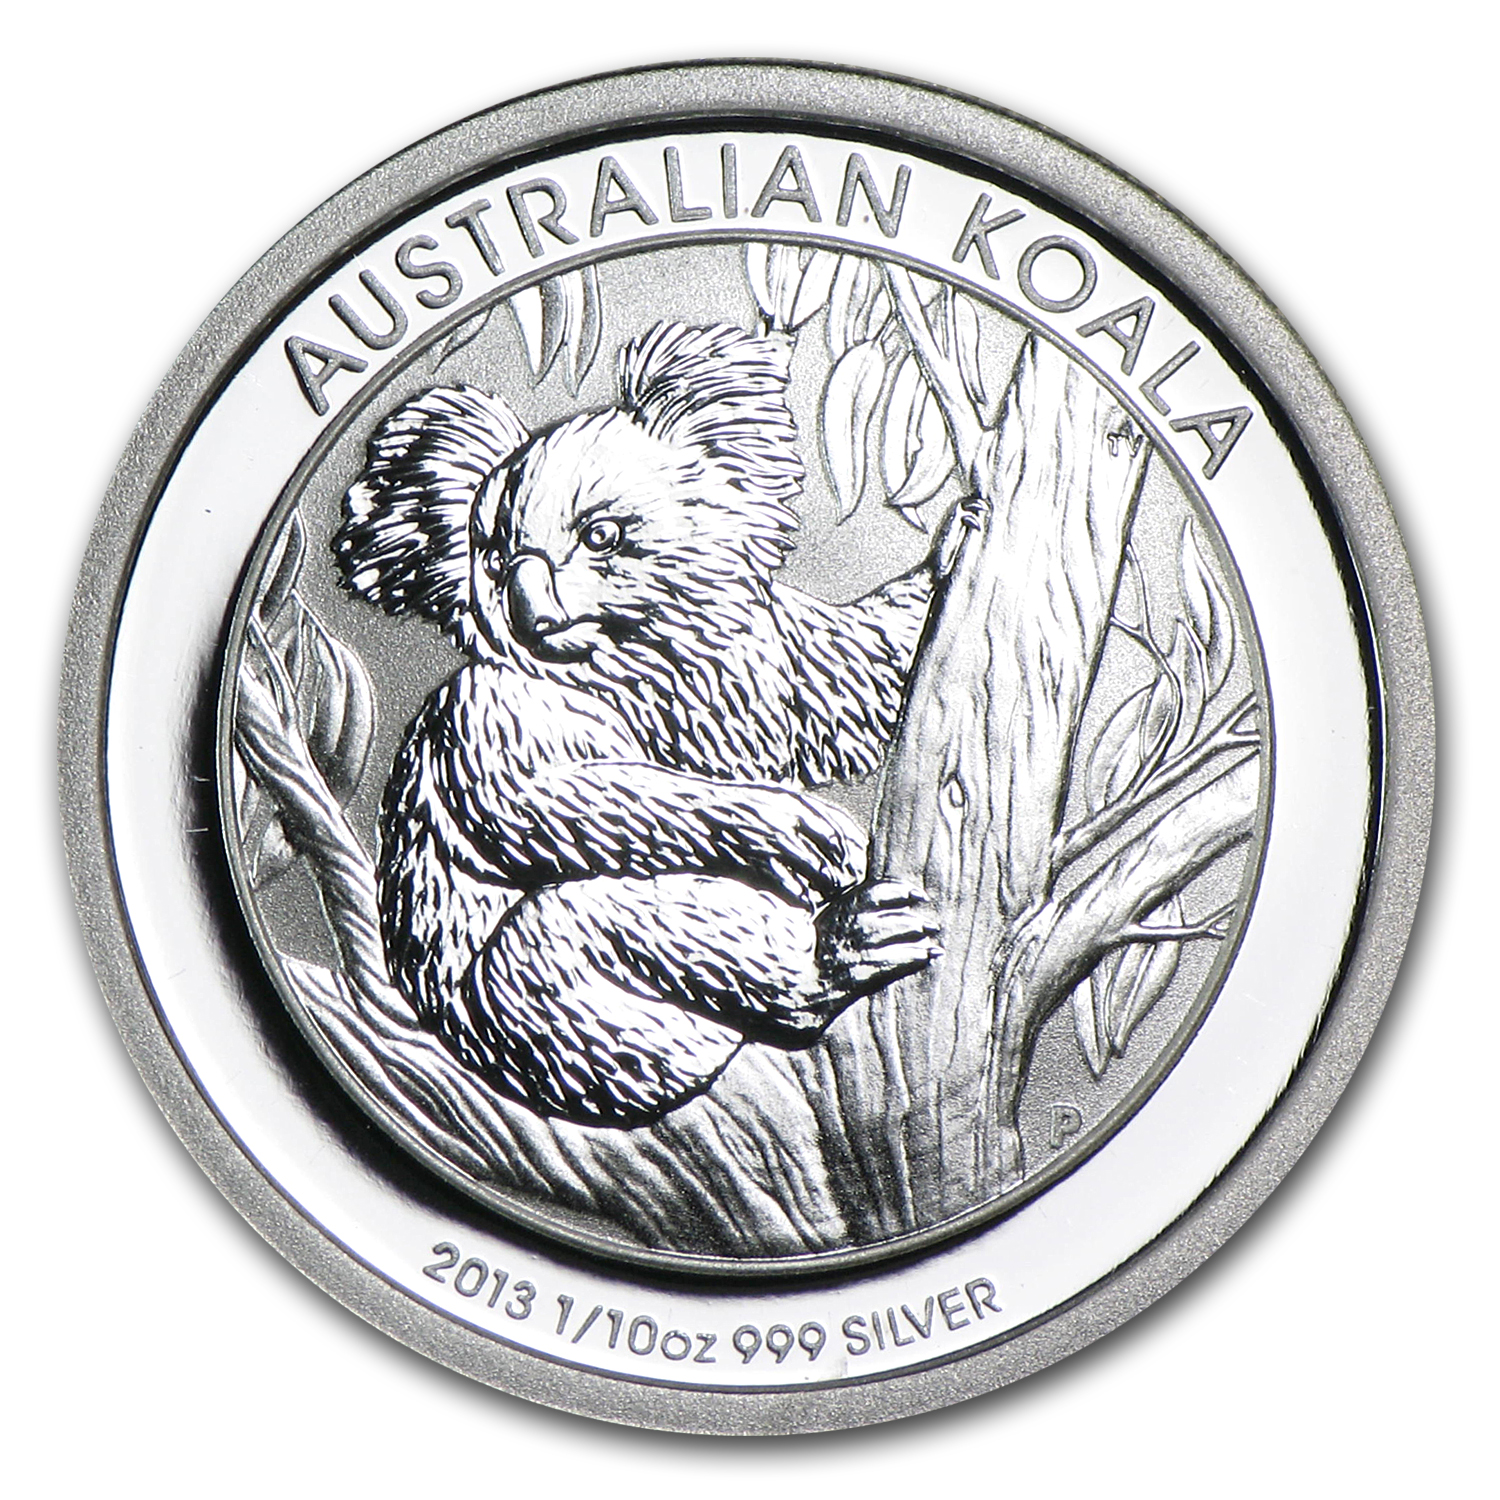 2013 Australia 1/10 oz Silver Koala BU (In display card)